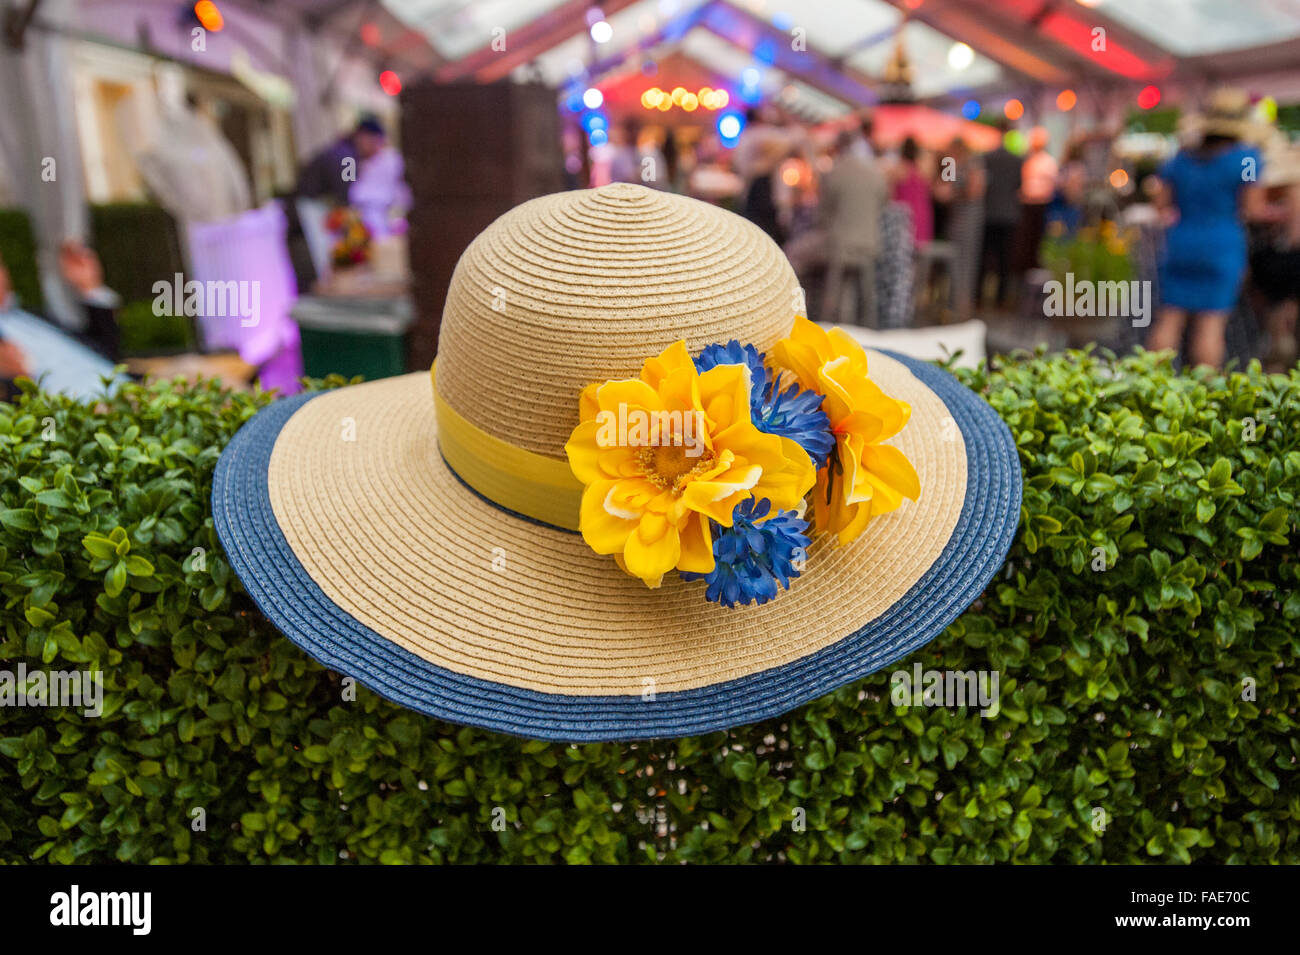 Lady's hat with flowers. - Stock Image